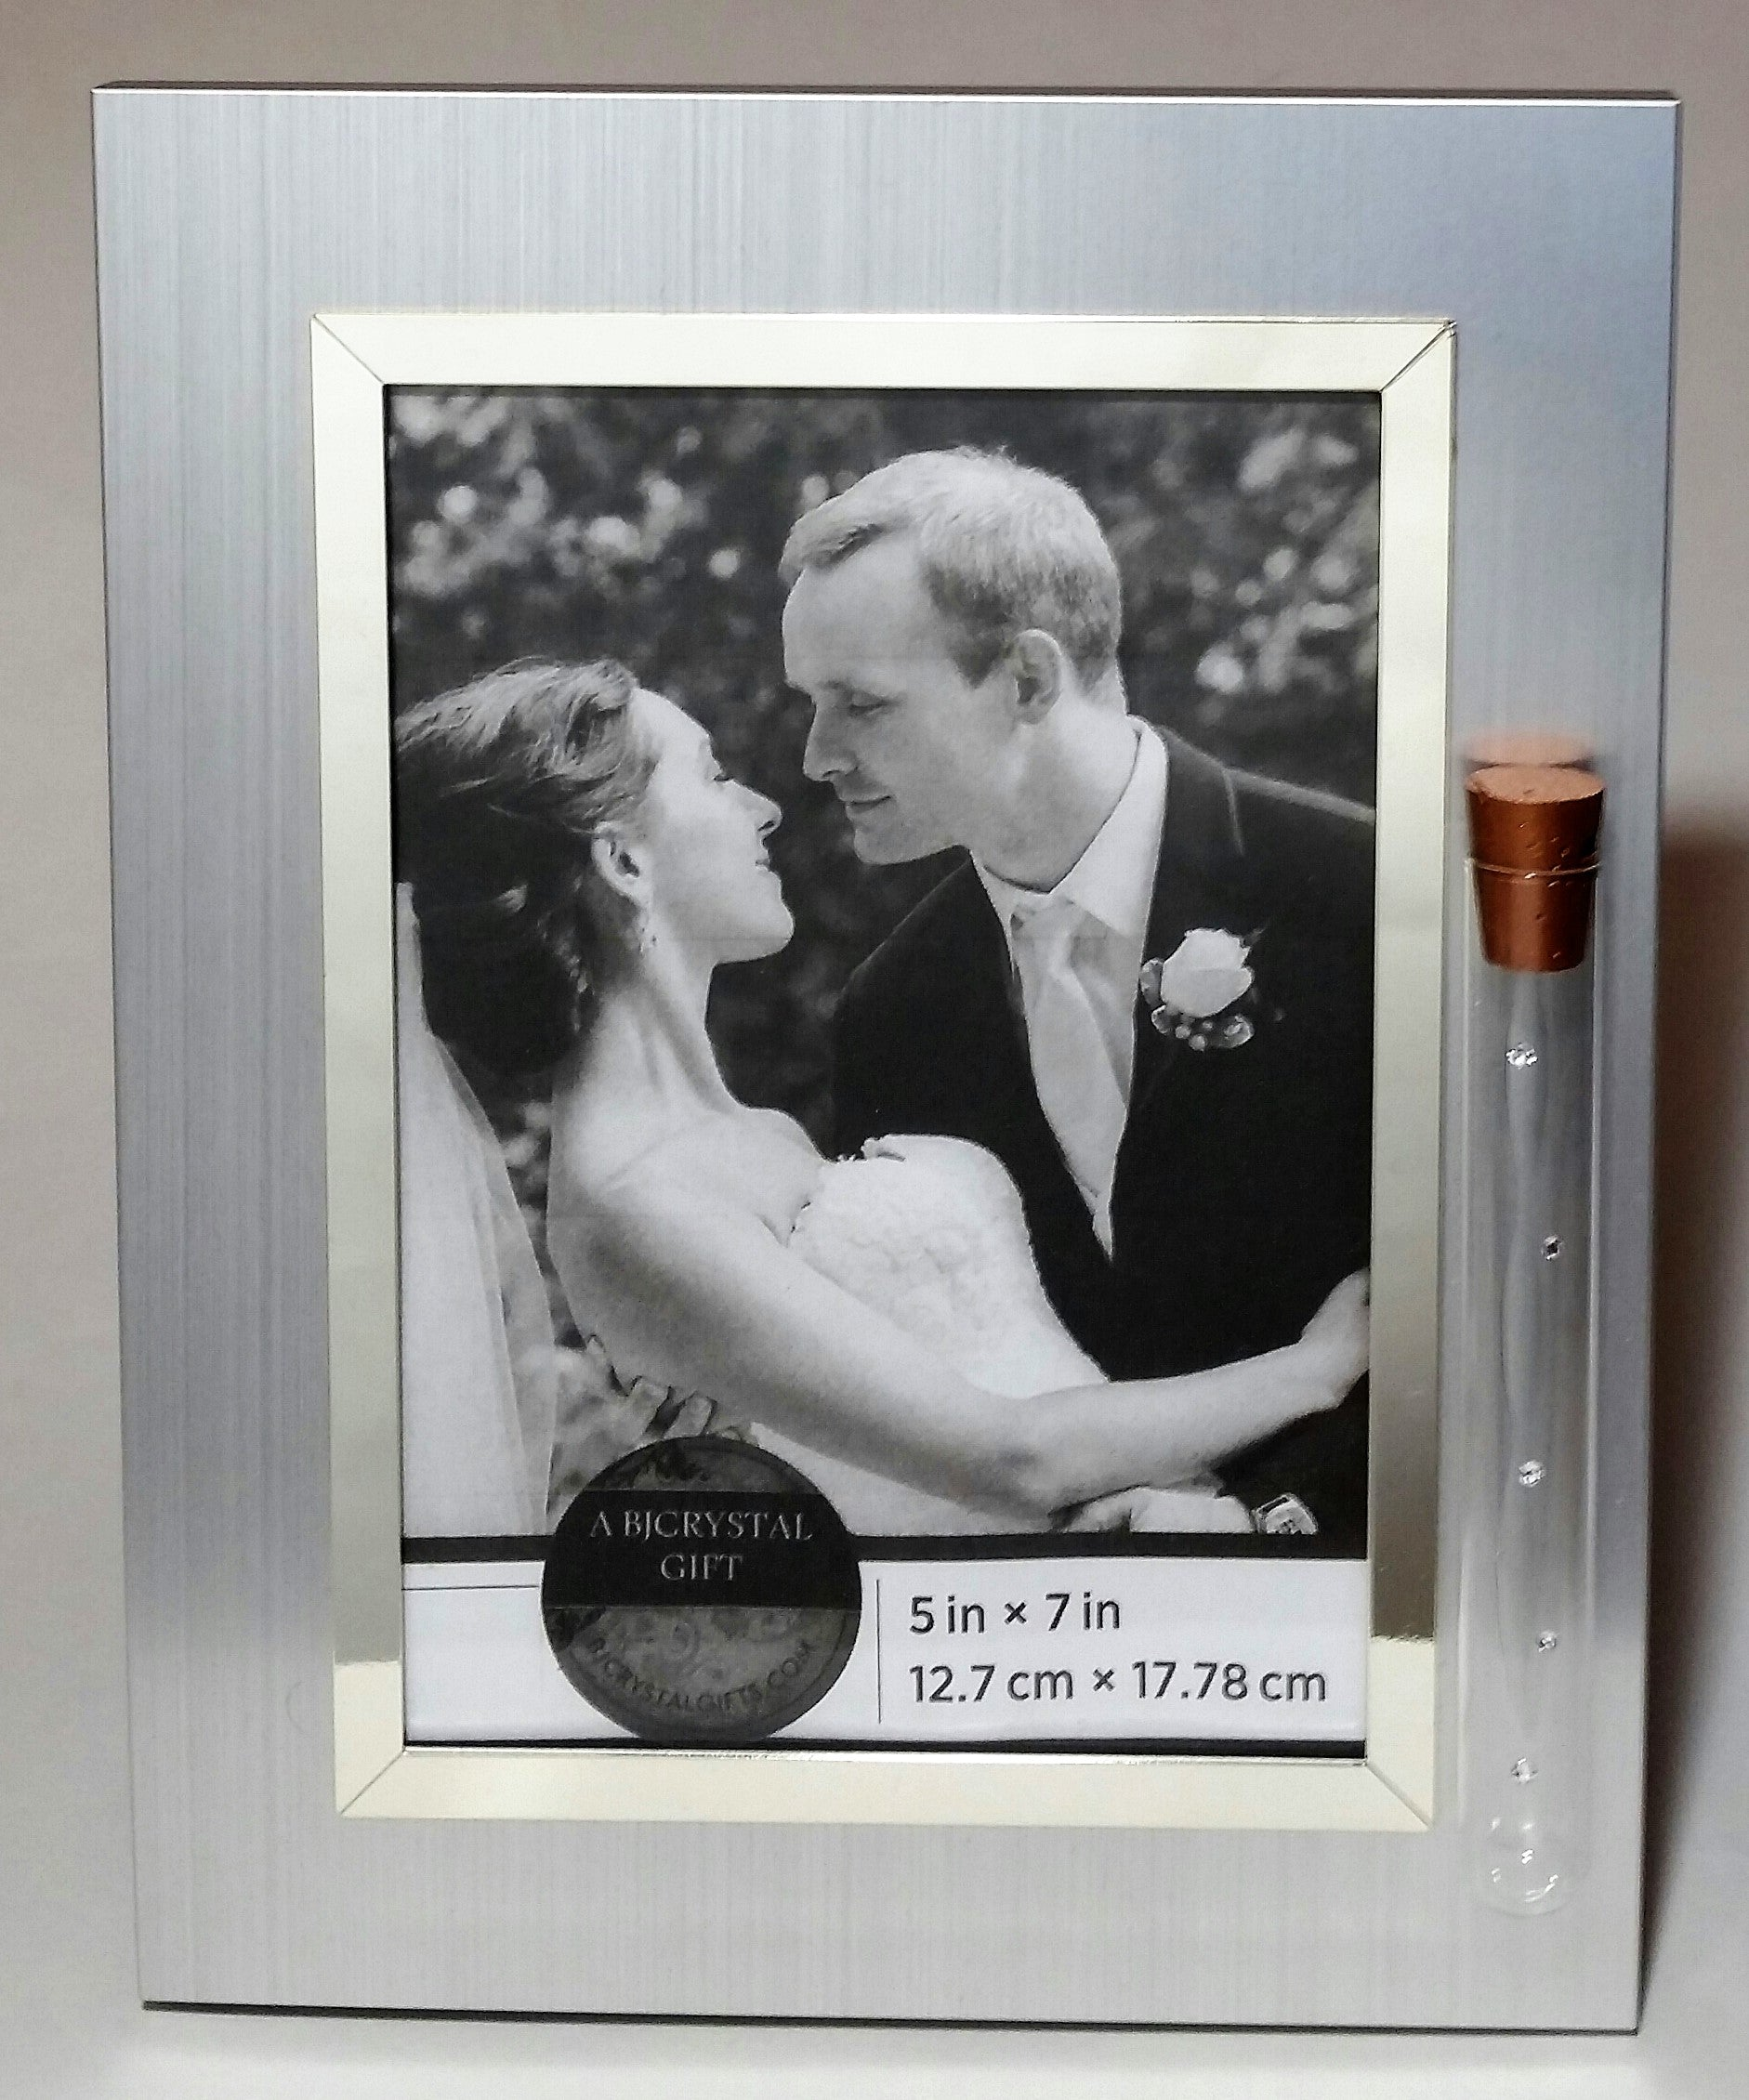 Jewish Wedding Picture Frame - Jewish Engagement Gift - 5x7 Picture - Brush Silver Color with Reflective Silvertone Trim